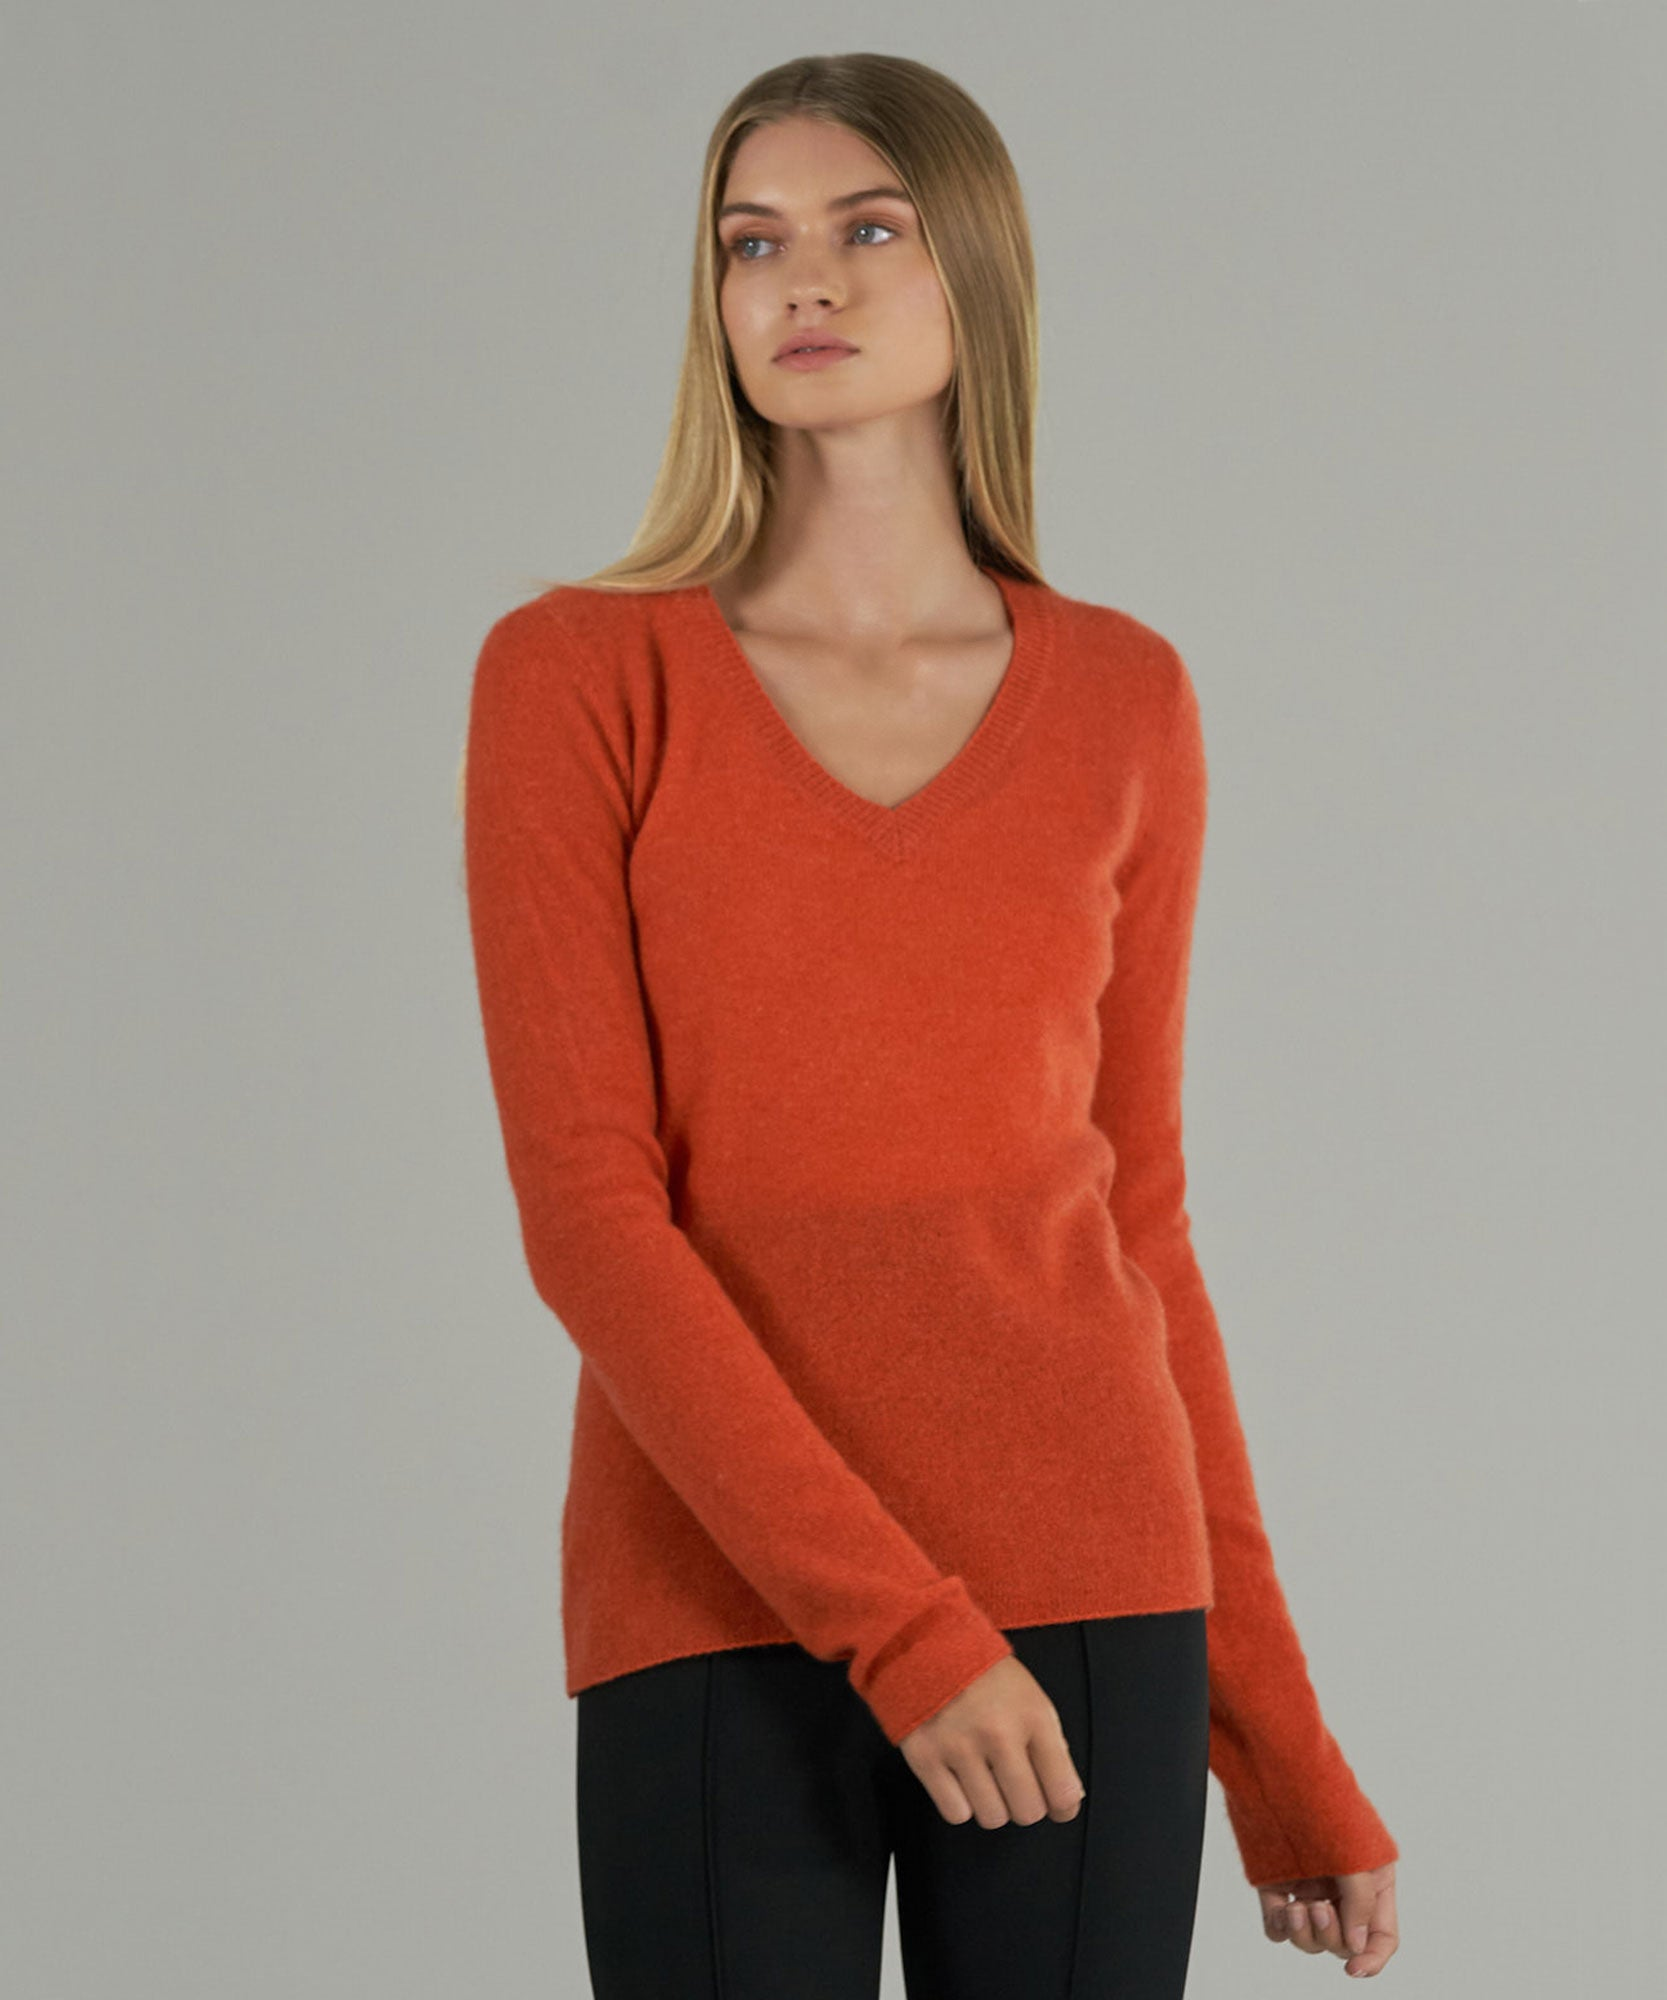 Tangerine Cashmere V-Neck Sweater - Women's Sweater by ATM Anthony Thomas Melillo